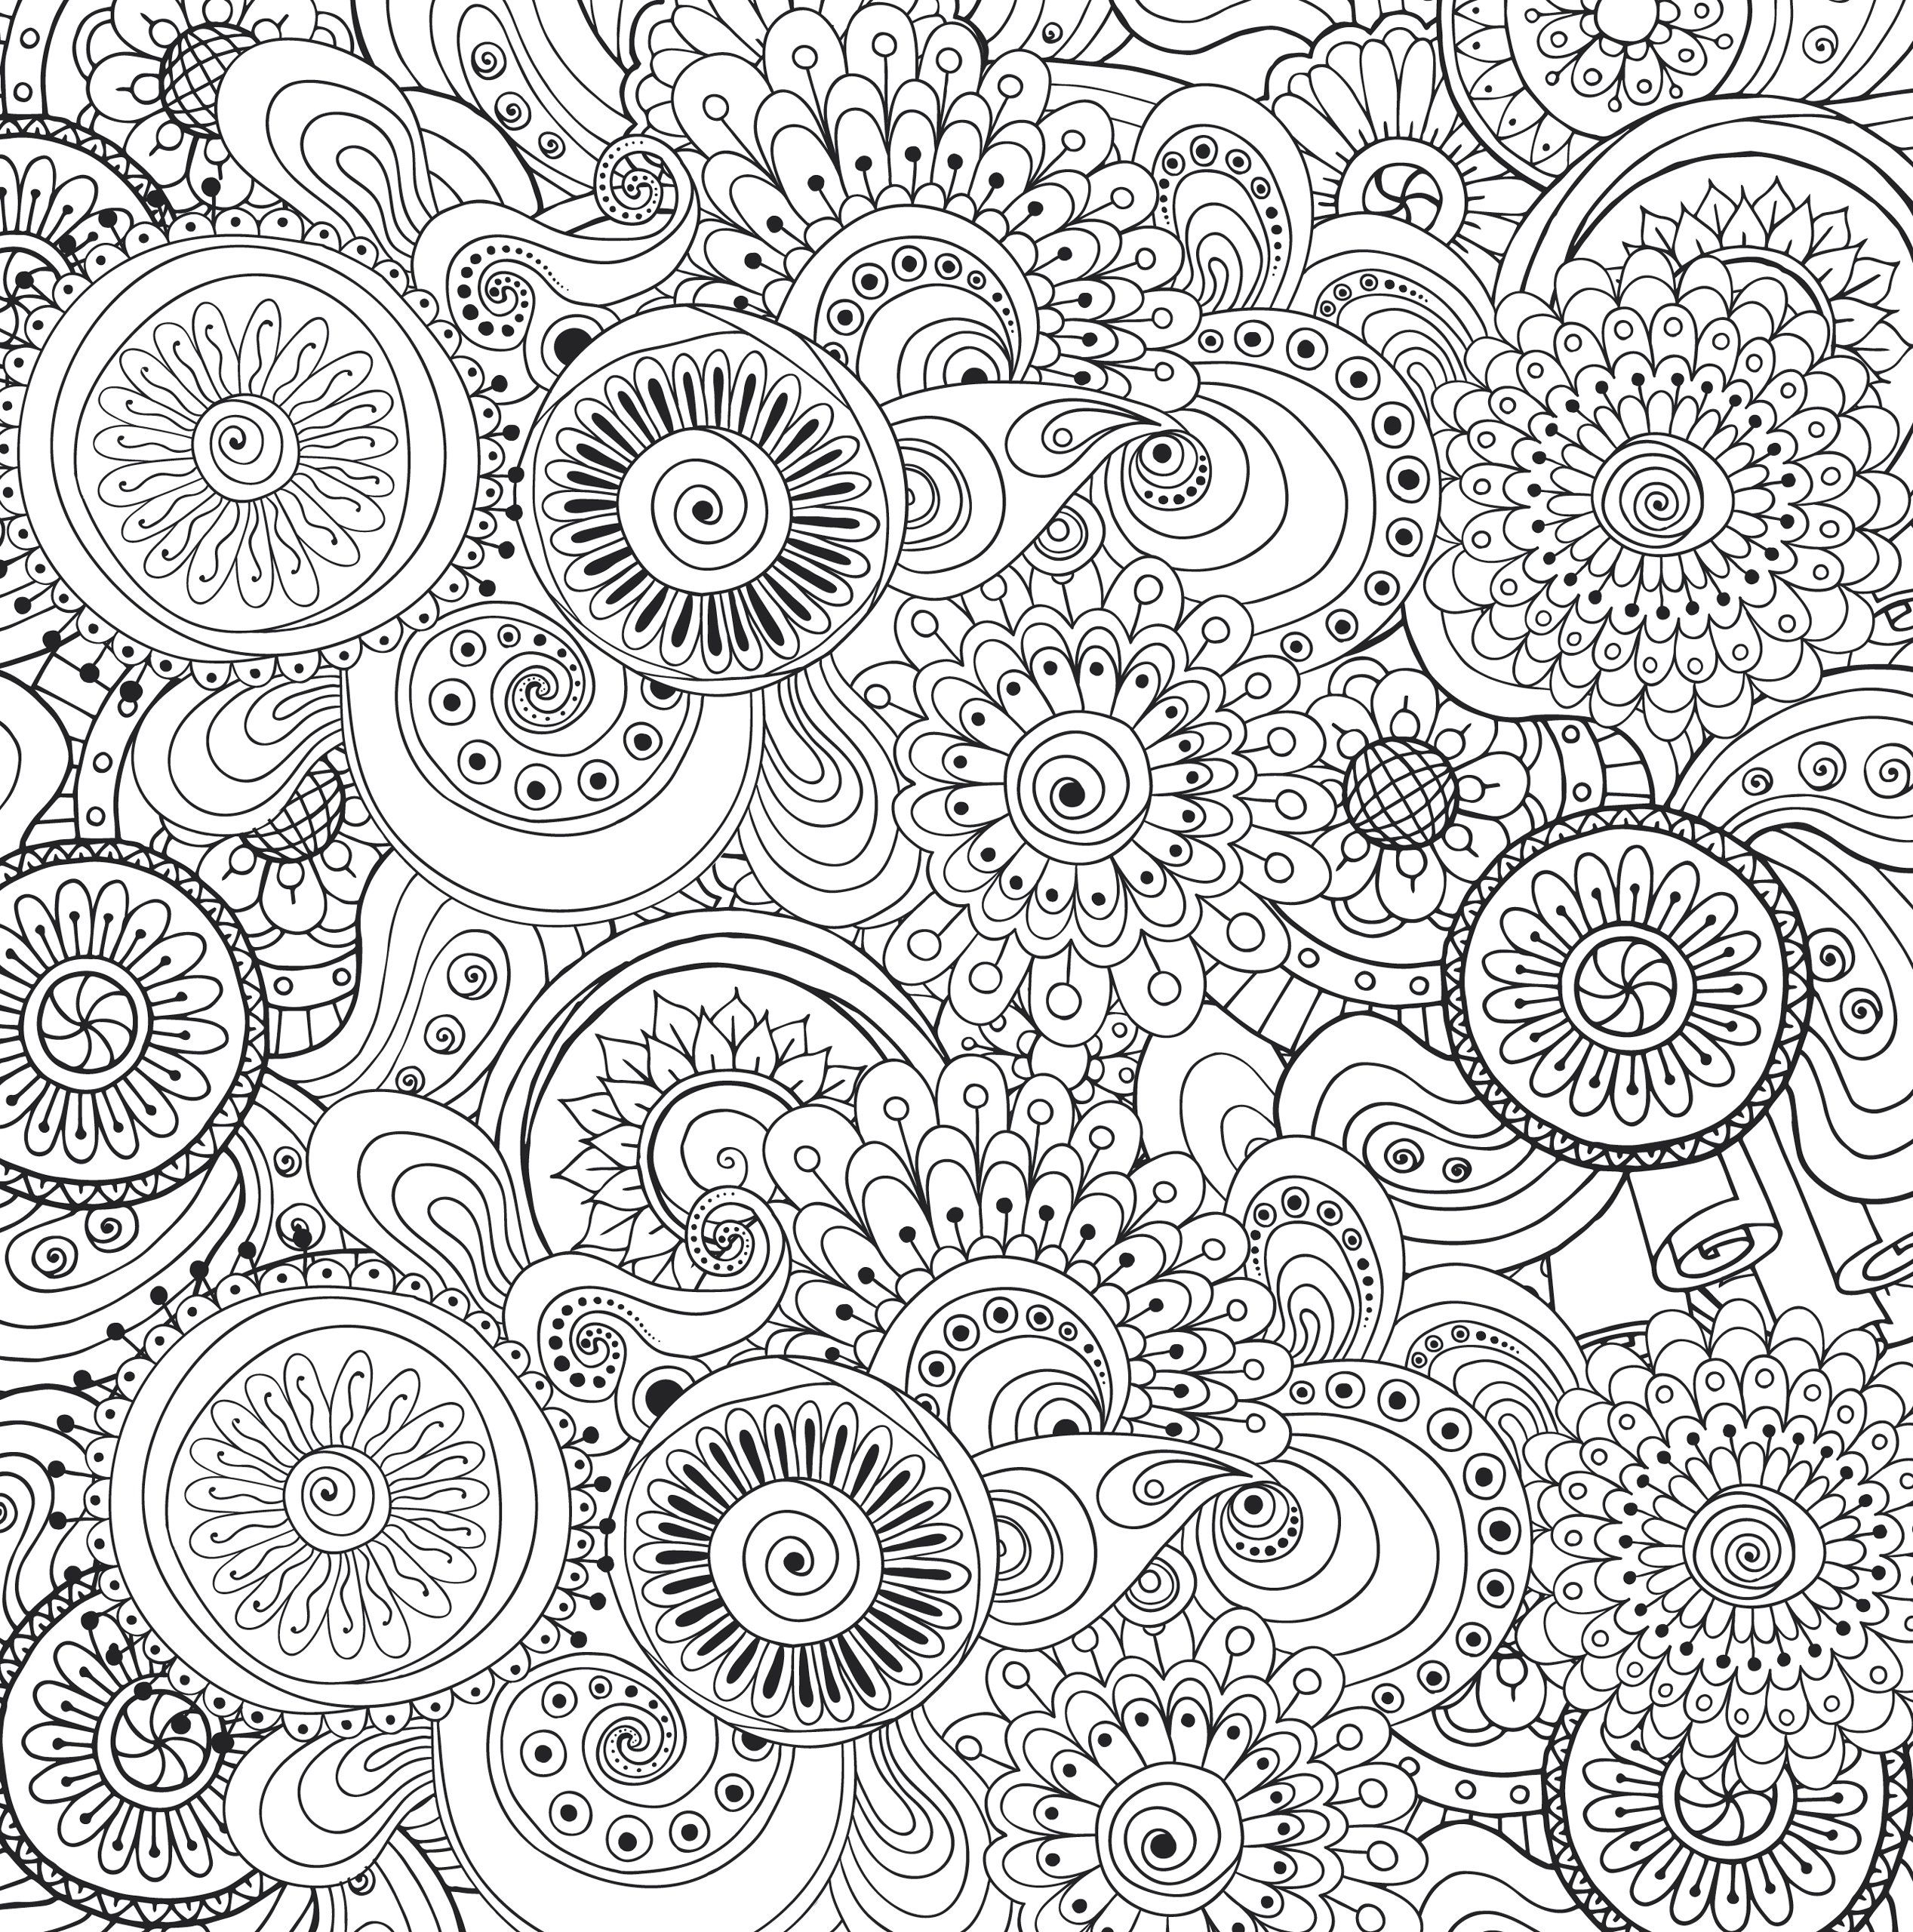 Stress relief coloring pages mandala - Peaceful Paisleys Adult Coloring Book 31 Stress Relieving Designs Peter Pauper Press